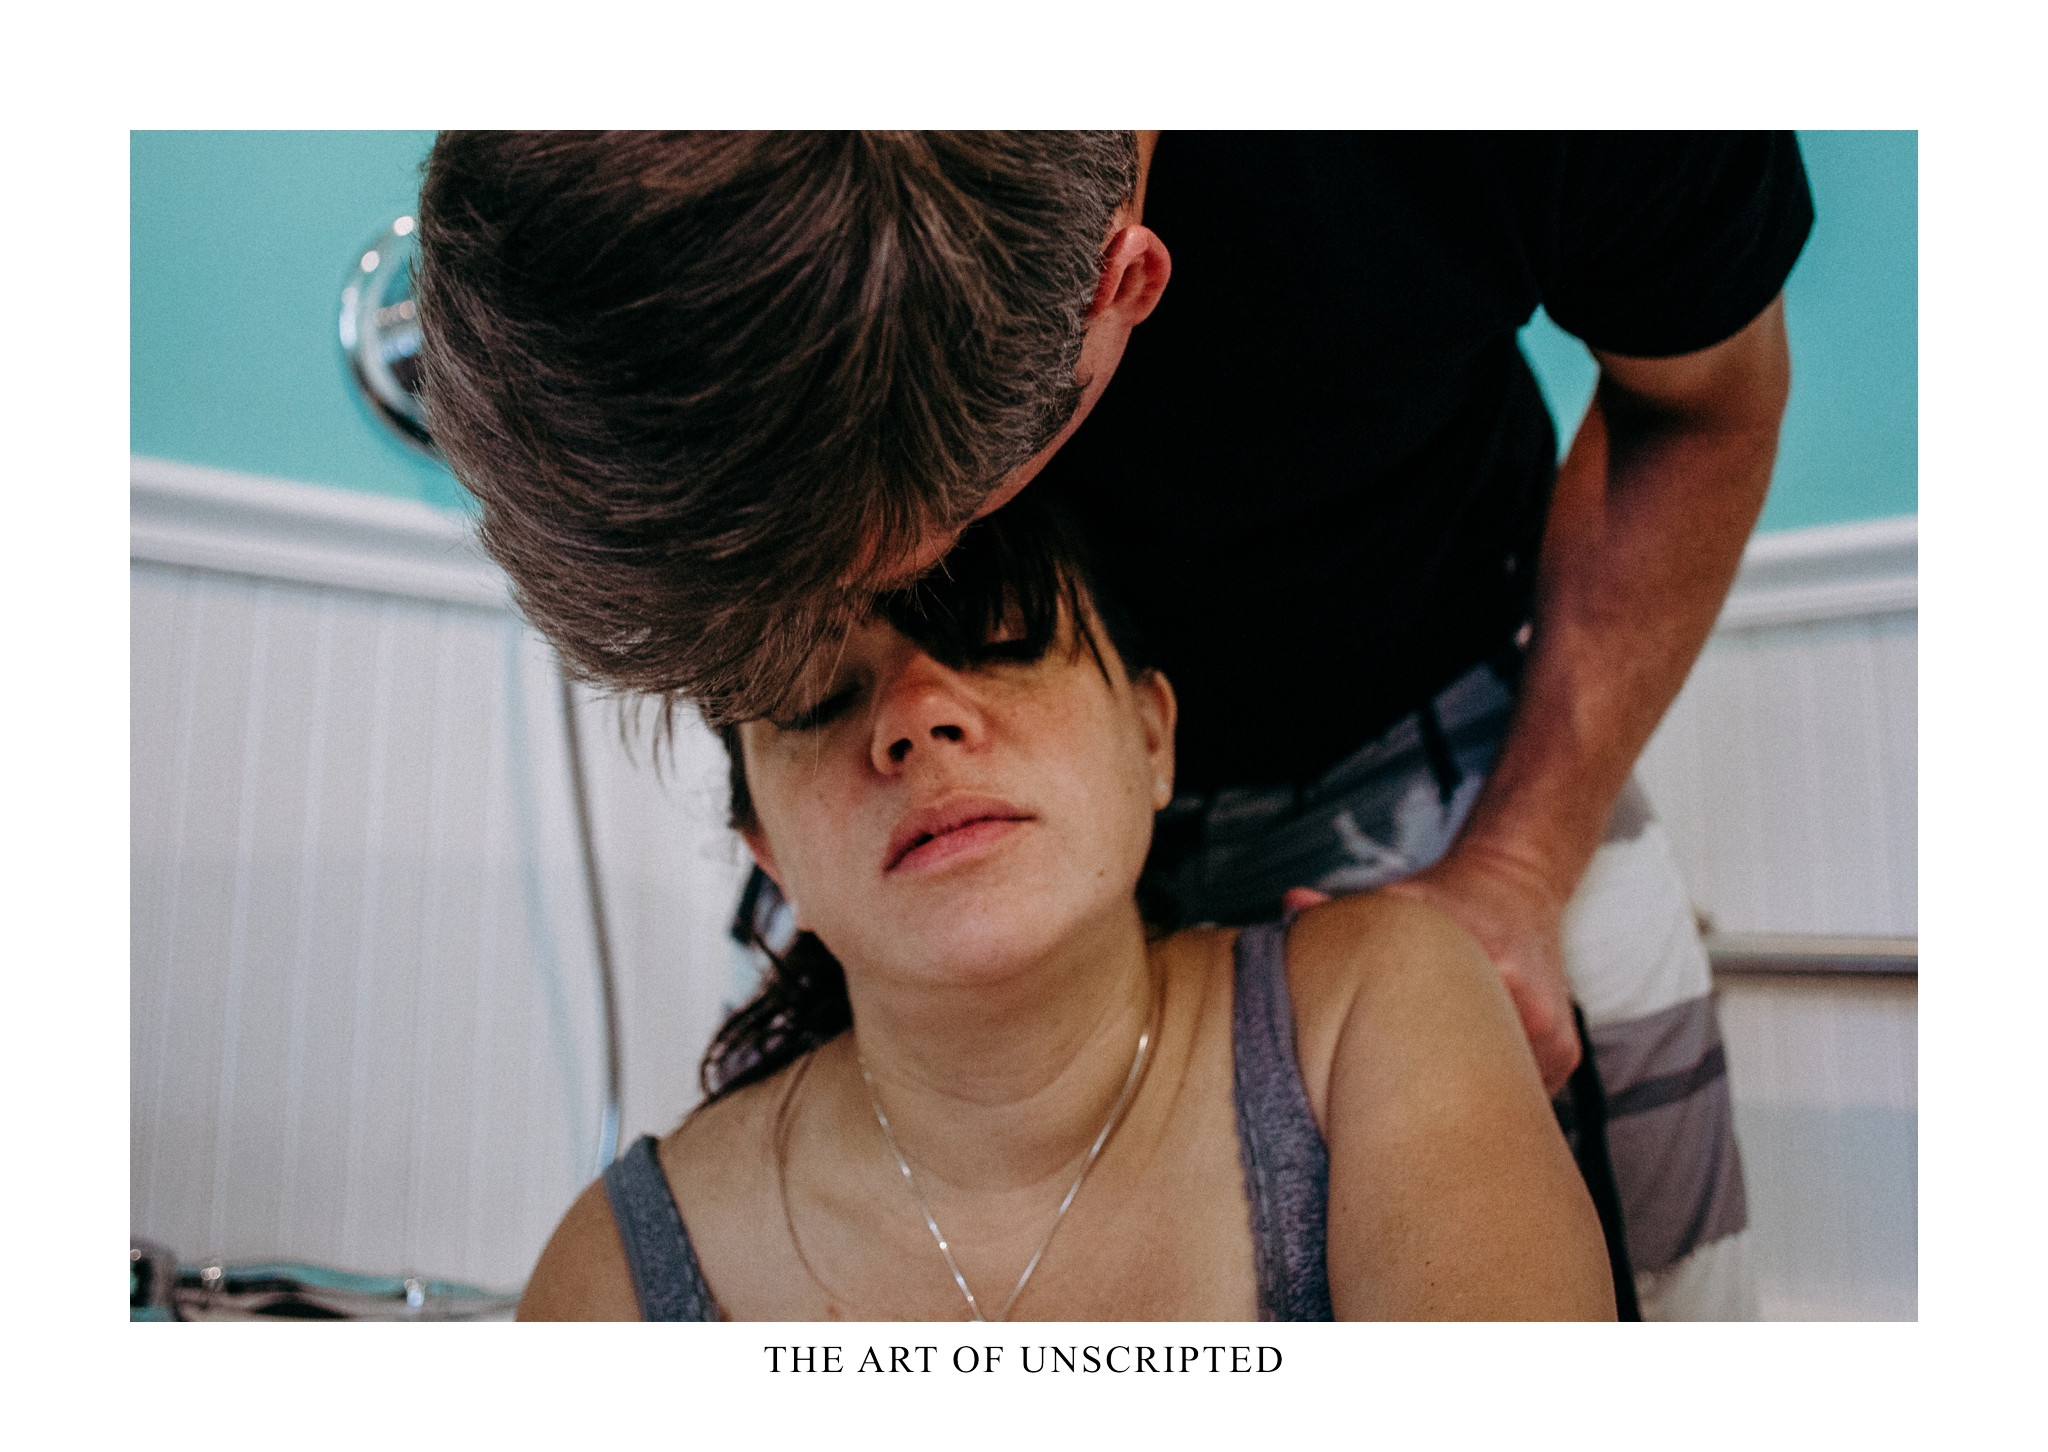 2017-06-10_170703__THE ART OF UNSCRIPTED_SPRINGFIELD MO_BIRTH PHOTOGRAPHER_ DOCUMENTARY_STORYTELLING_417_PHOTOGRAPHER